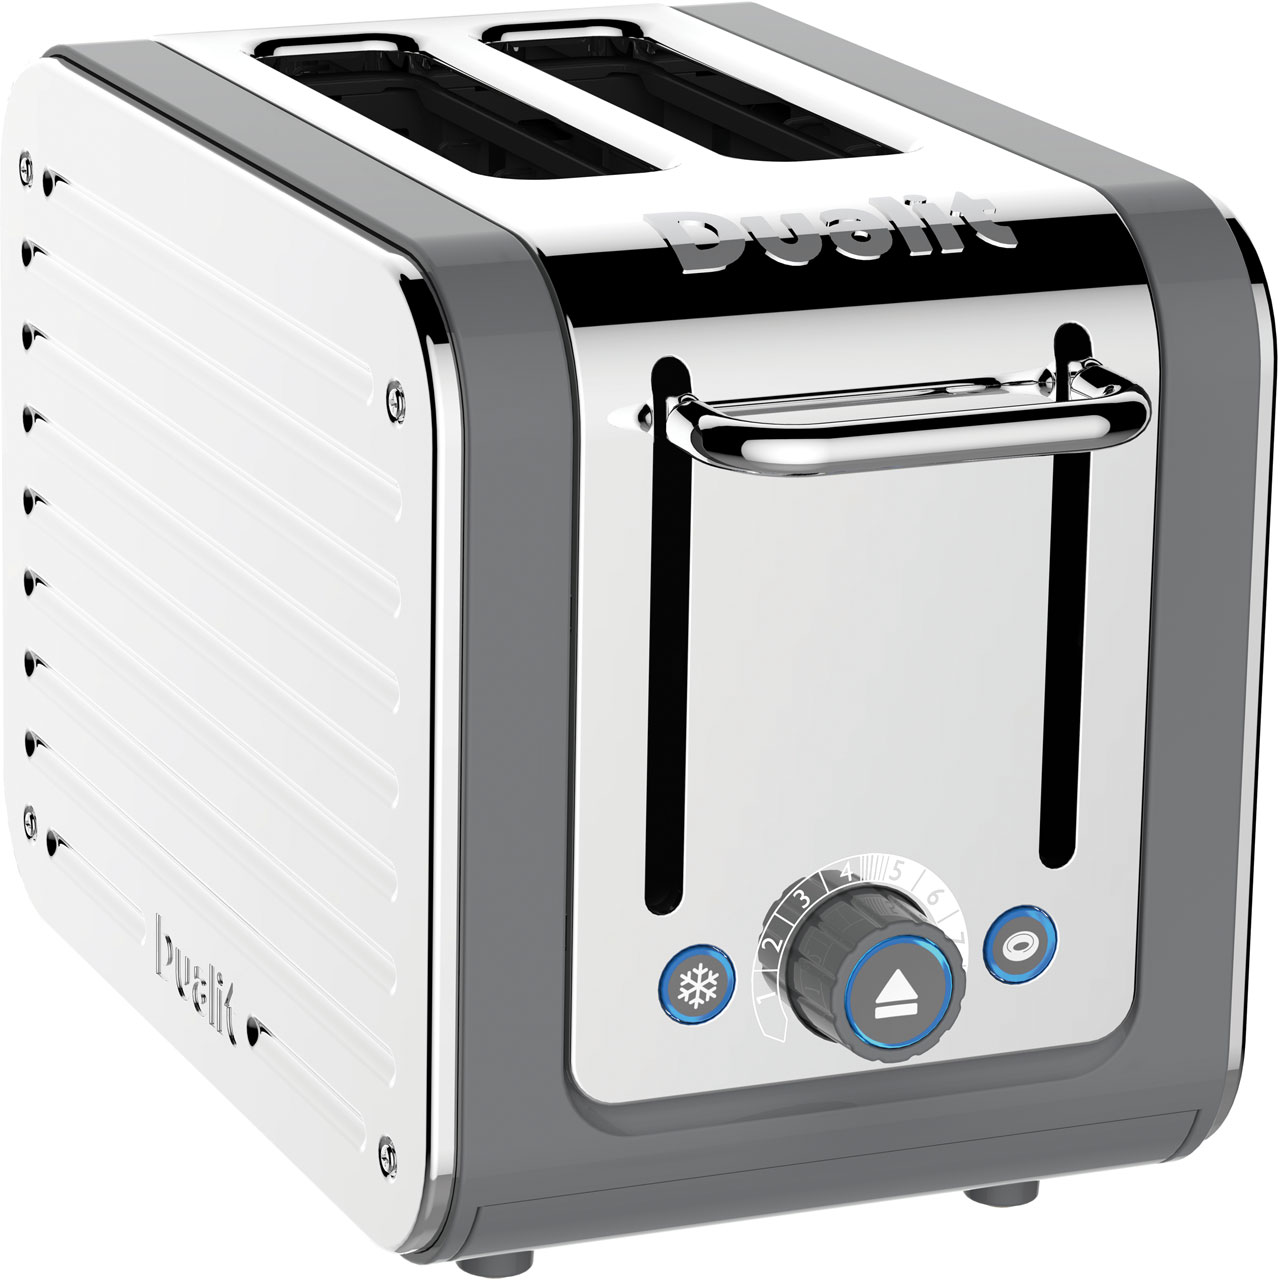 Dualit 26526 Architect 2 Slice Toaster Stainless Steel